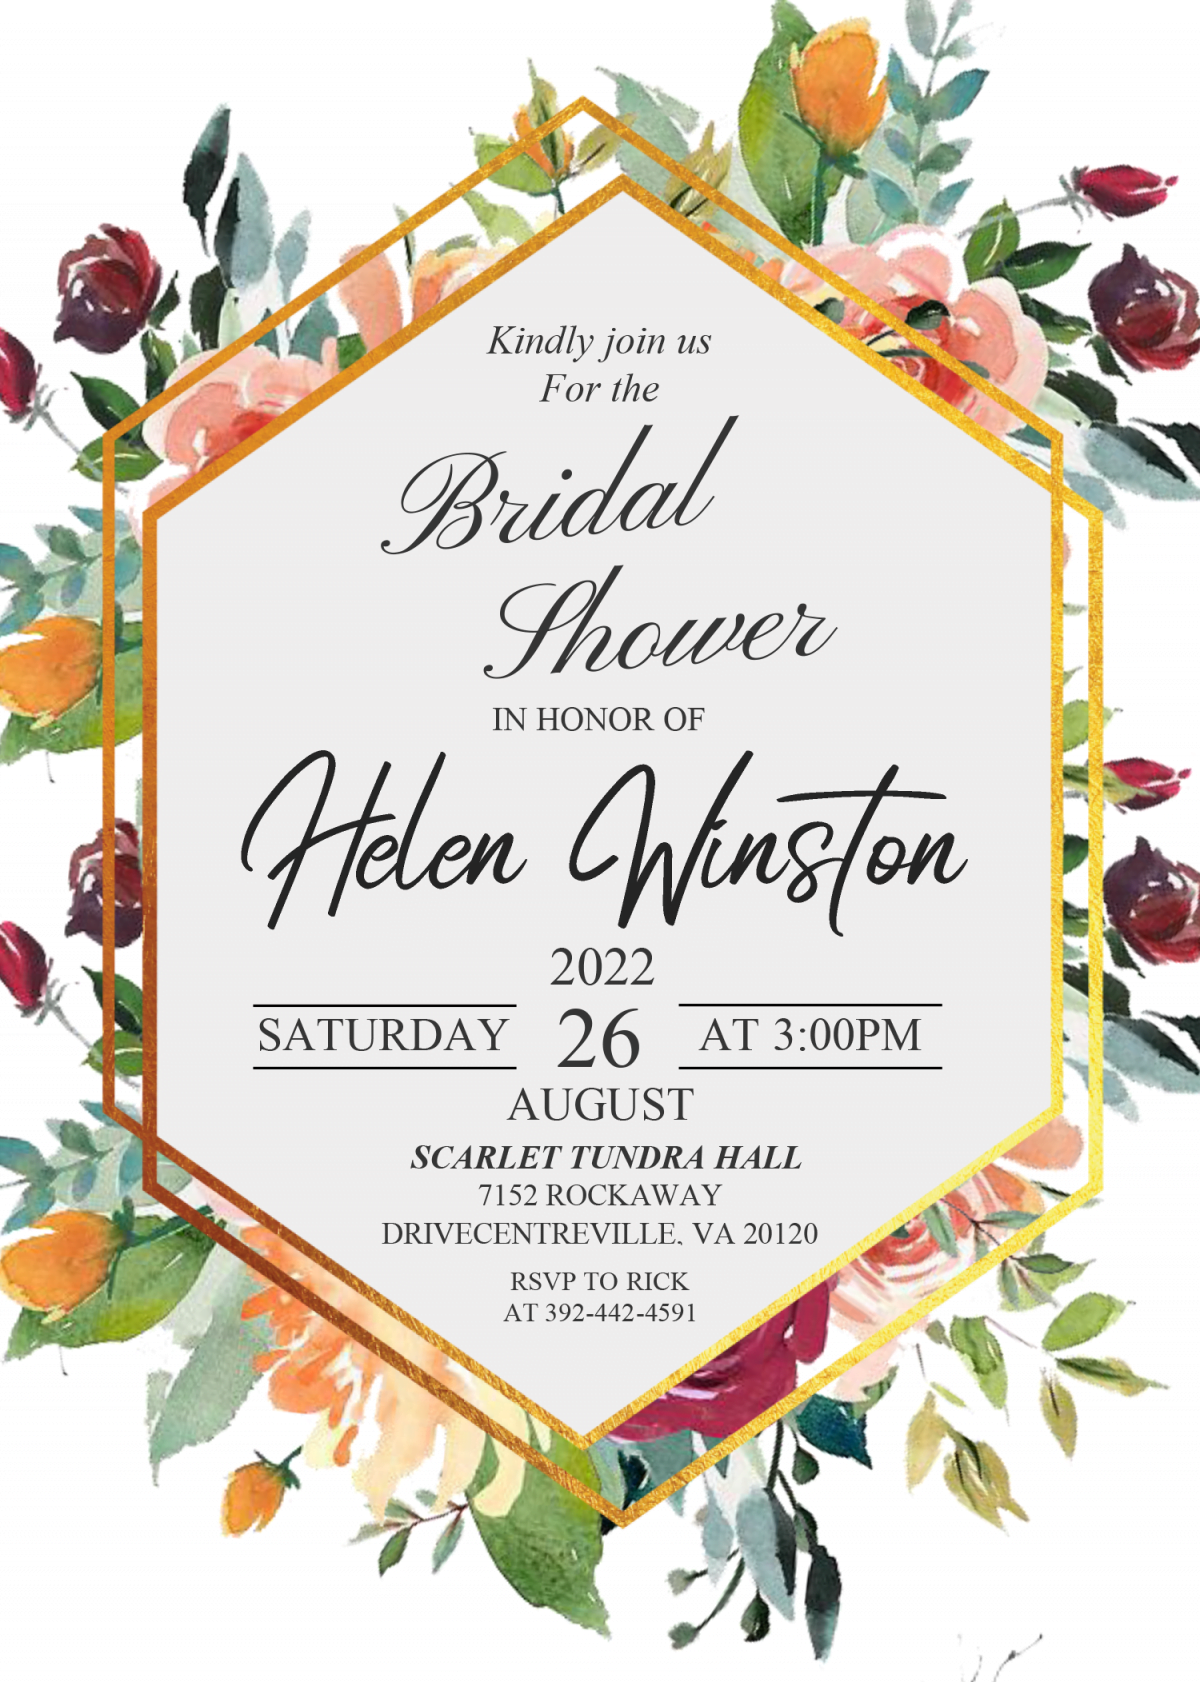 Modern Floral Invitation Templates - Editable .DOCX and has watercolor floral painting